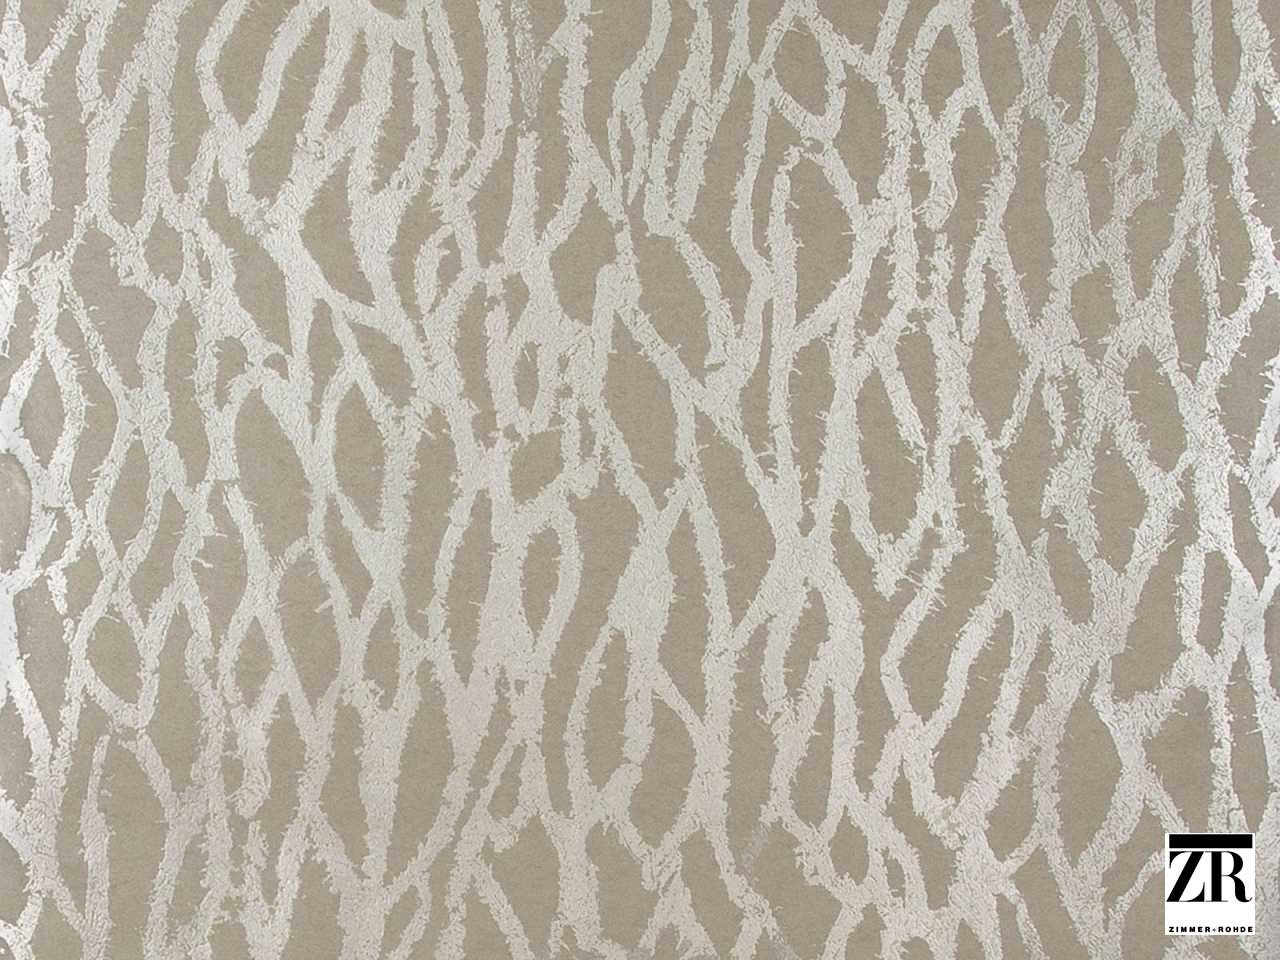 Zimmer and Rohde - Golden Rain - 2750018.185  | Wallpaper, Wallcovering - Grey, Silver, Organic, Domestic Use